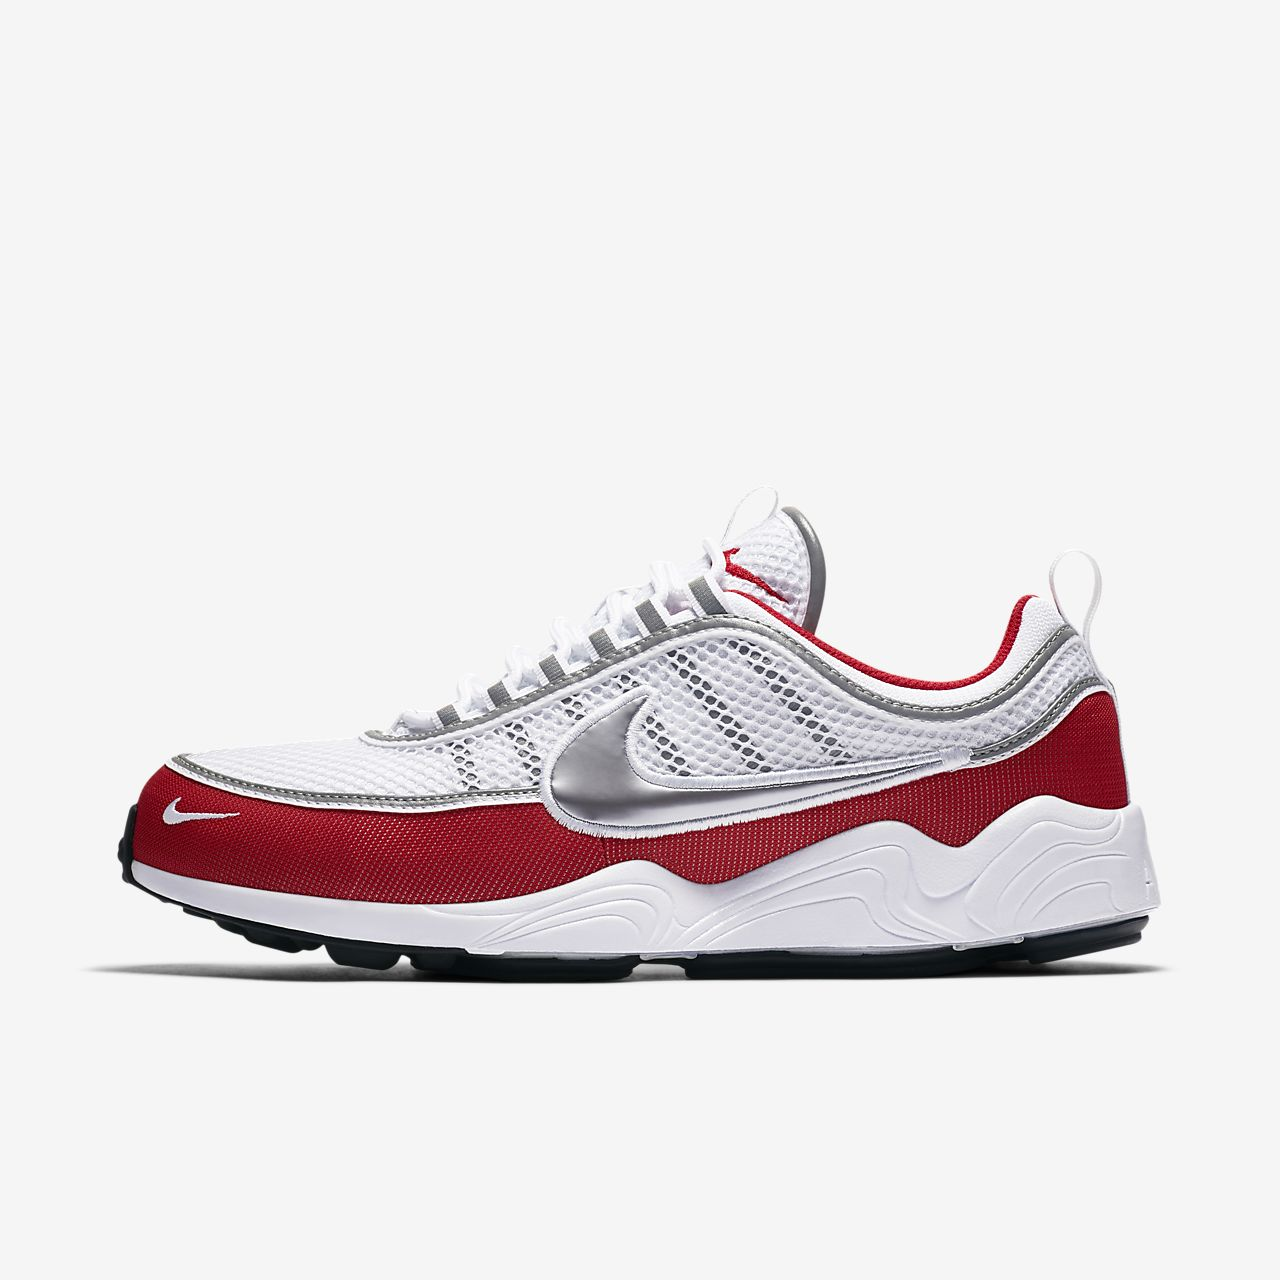 coupon code best prices 50% price Chaussure Nike Air Zoom Spiridon '16 pour Homme. Nike FR